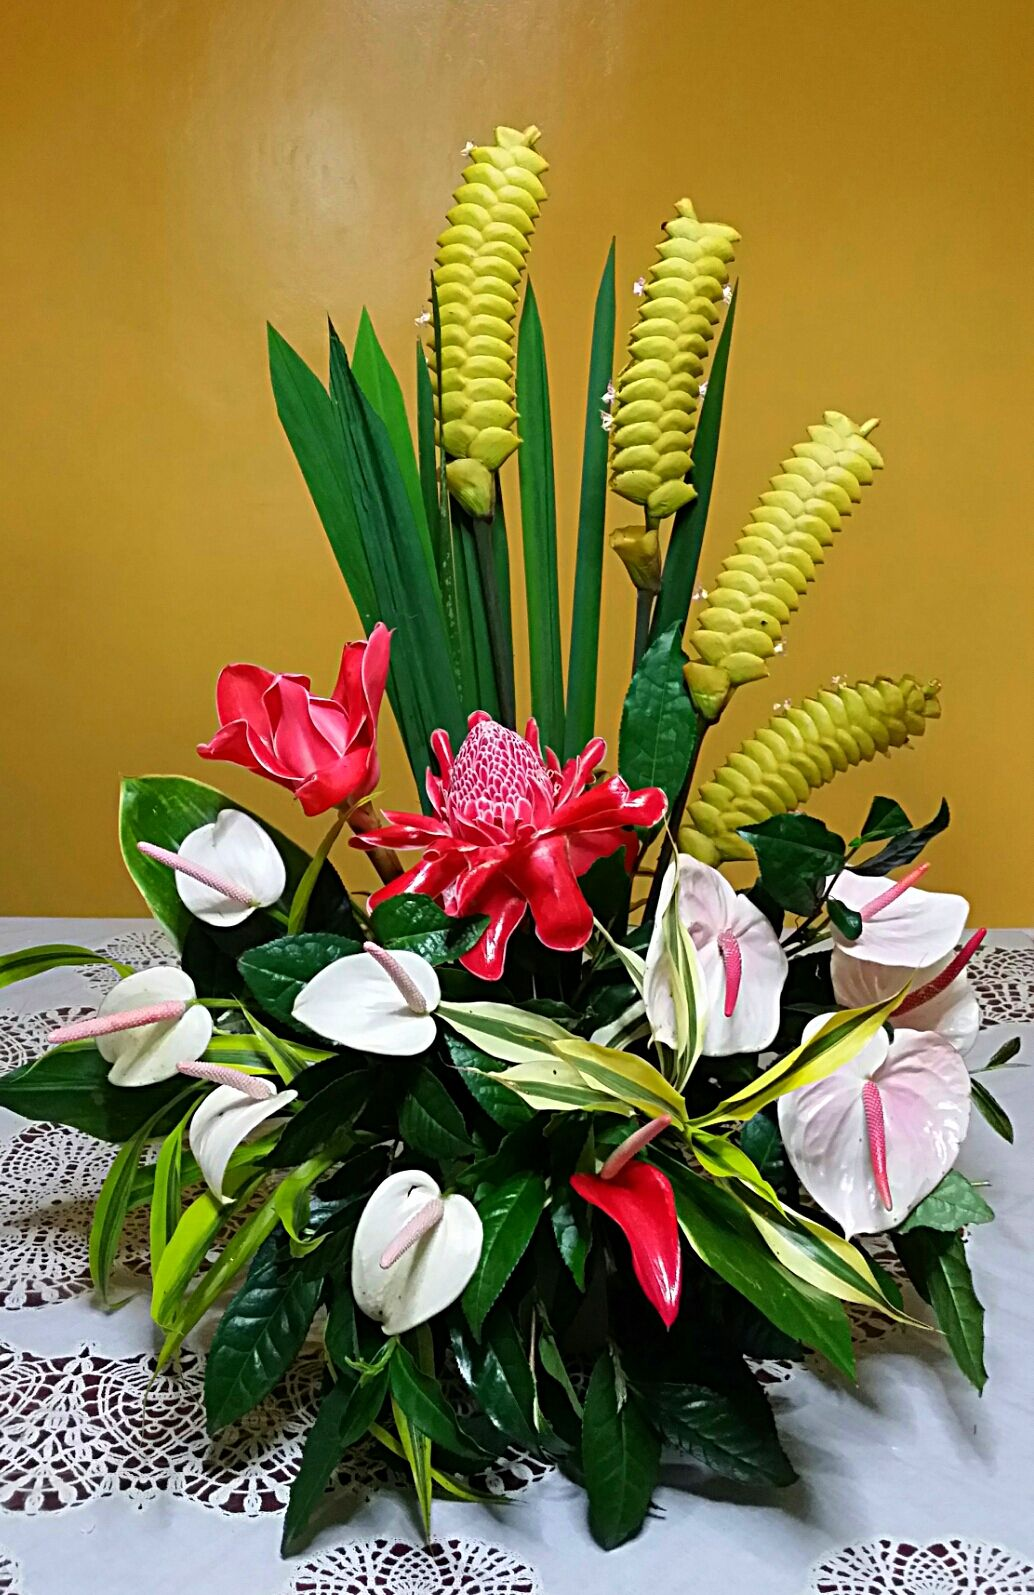 A Tropical Arrangement Using Ratthlesnake Flower White Anthuriums And Torch Ginger Flower Arrangements Ginger Flower Tropical Flower Arrangements